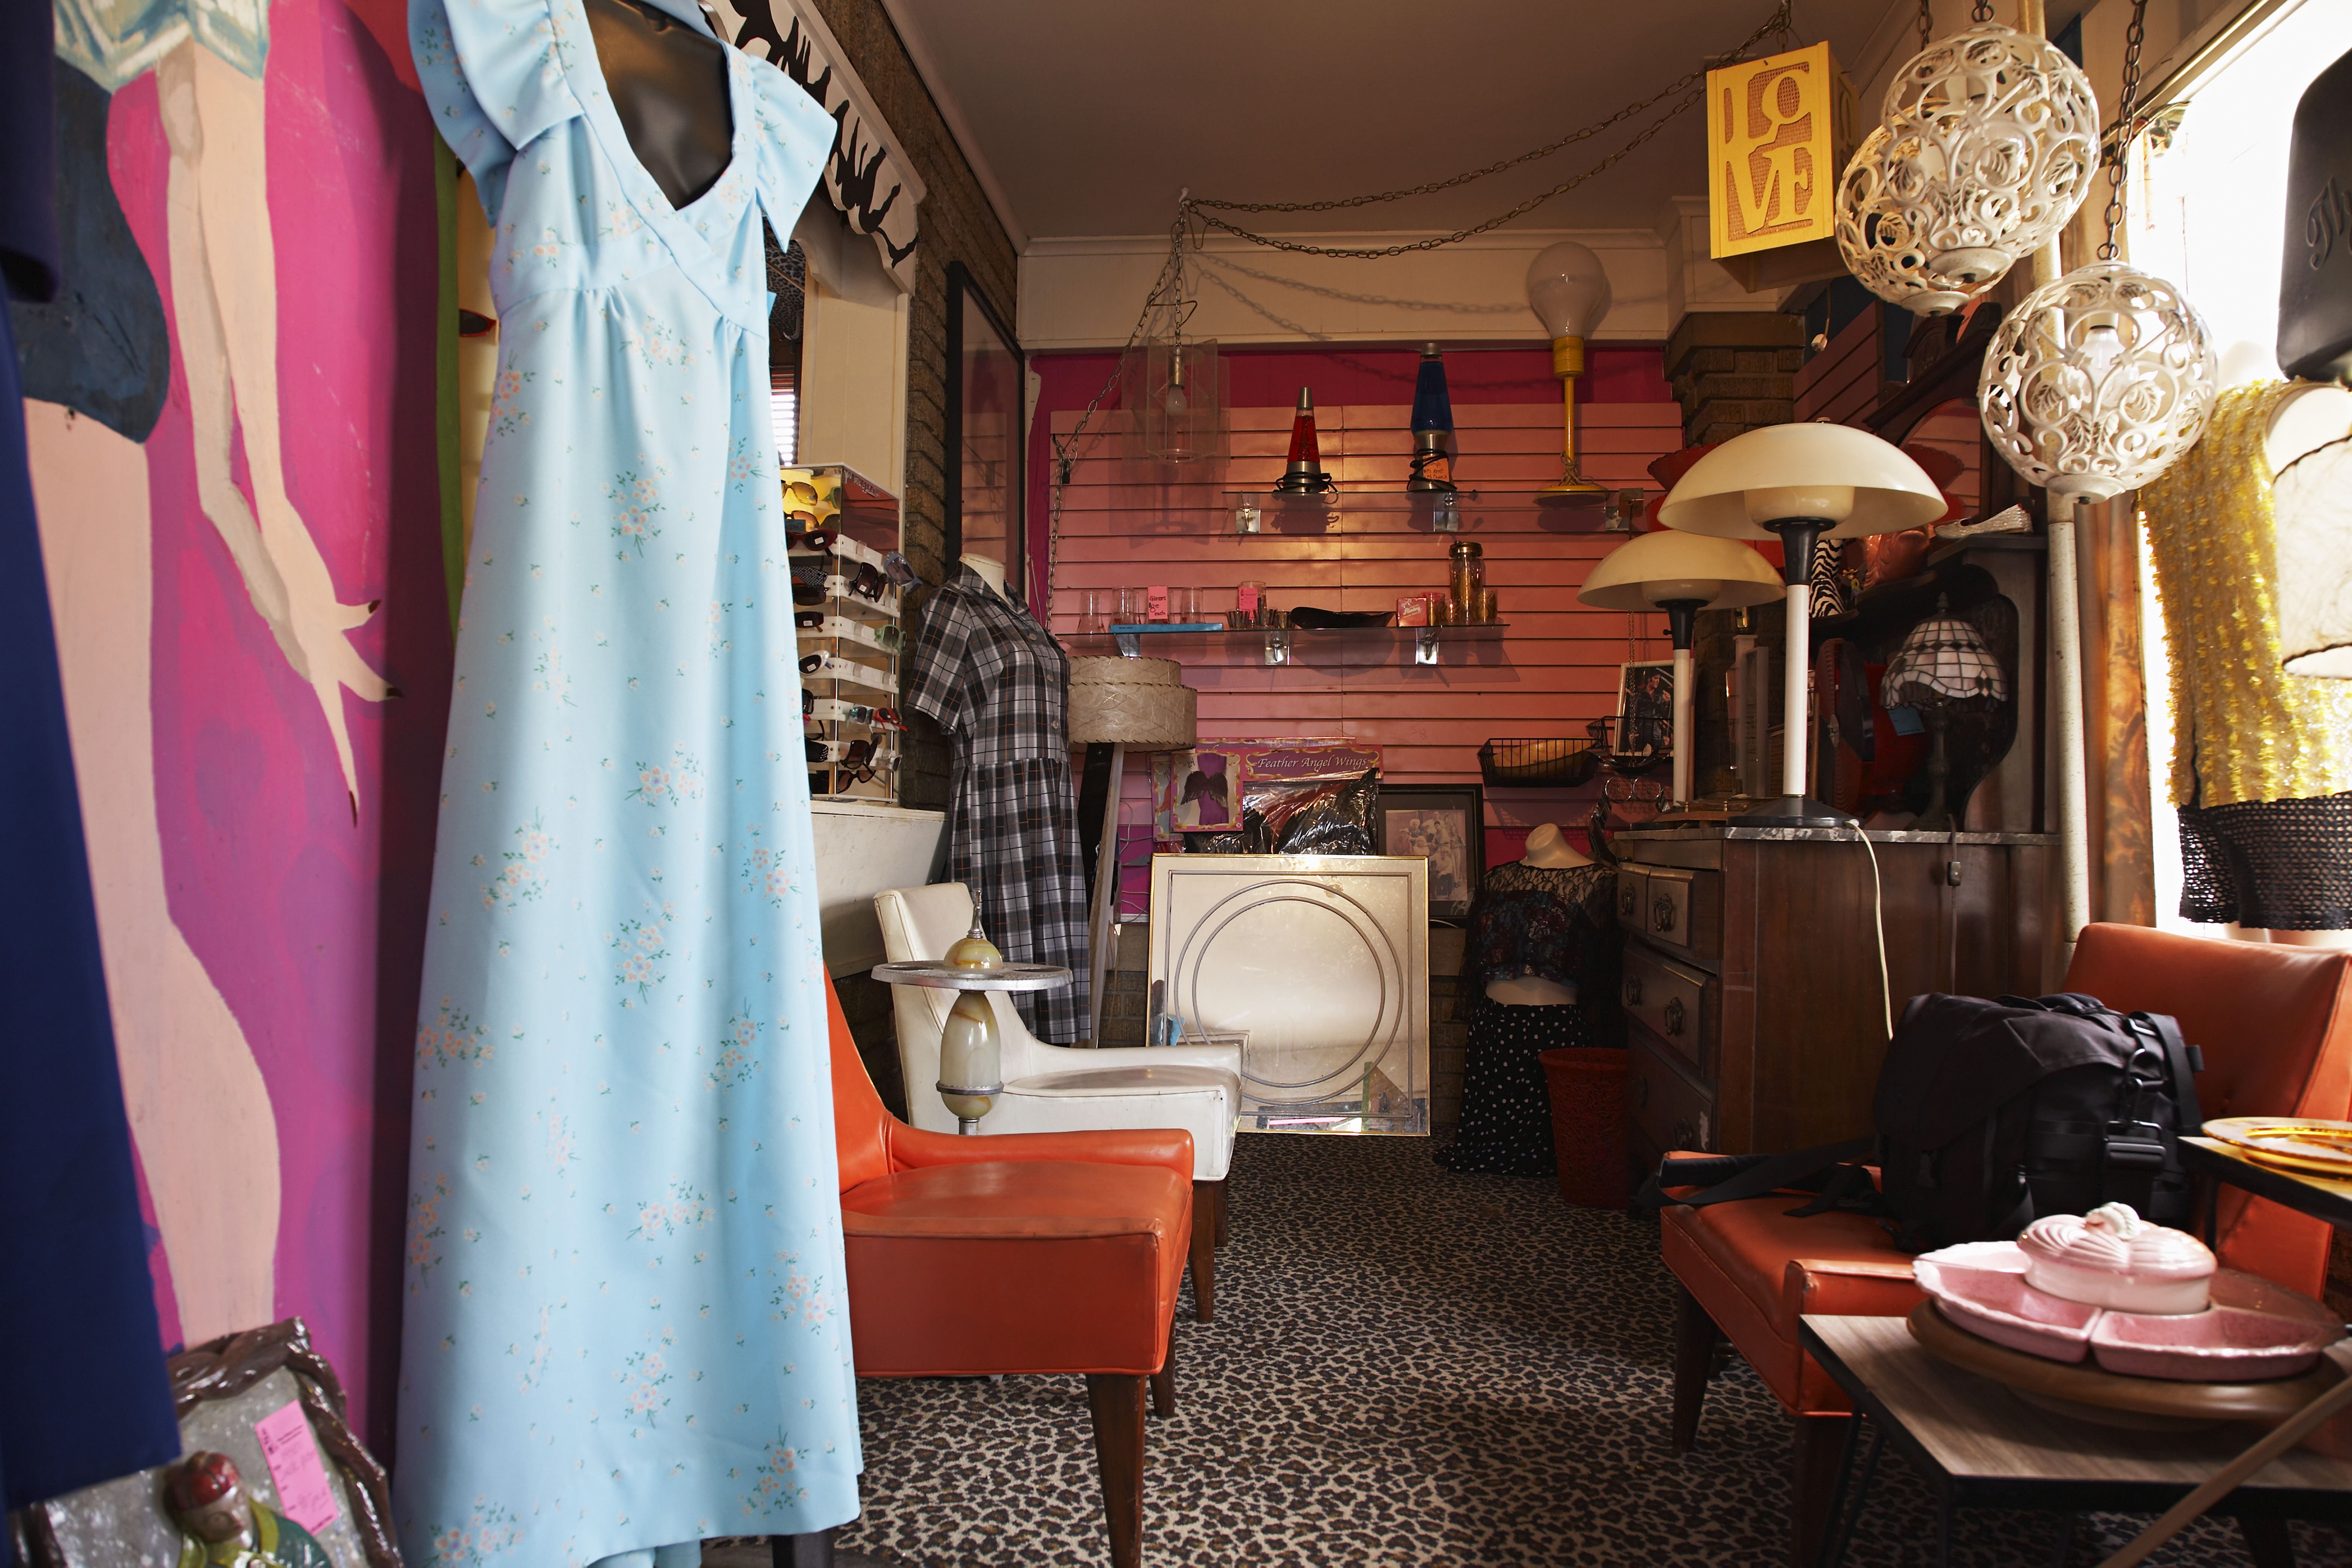 Clothing and furniture in crowded thrift store